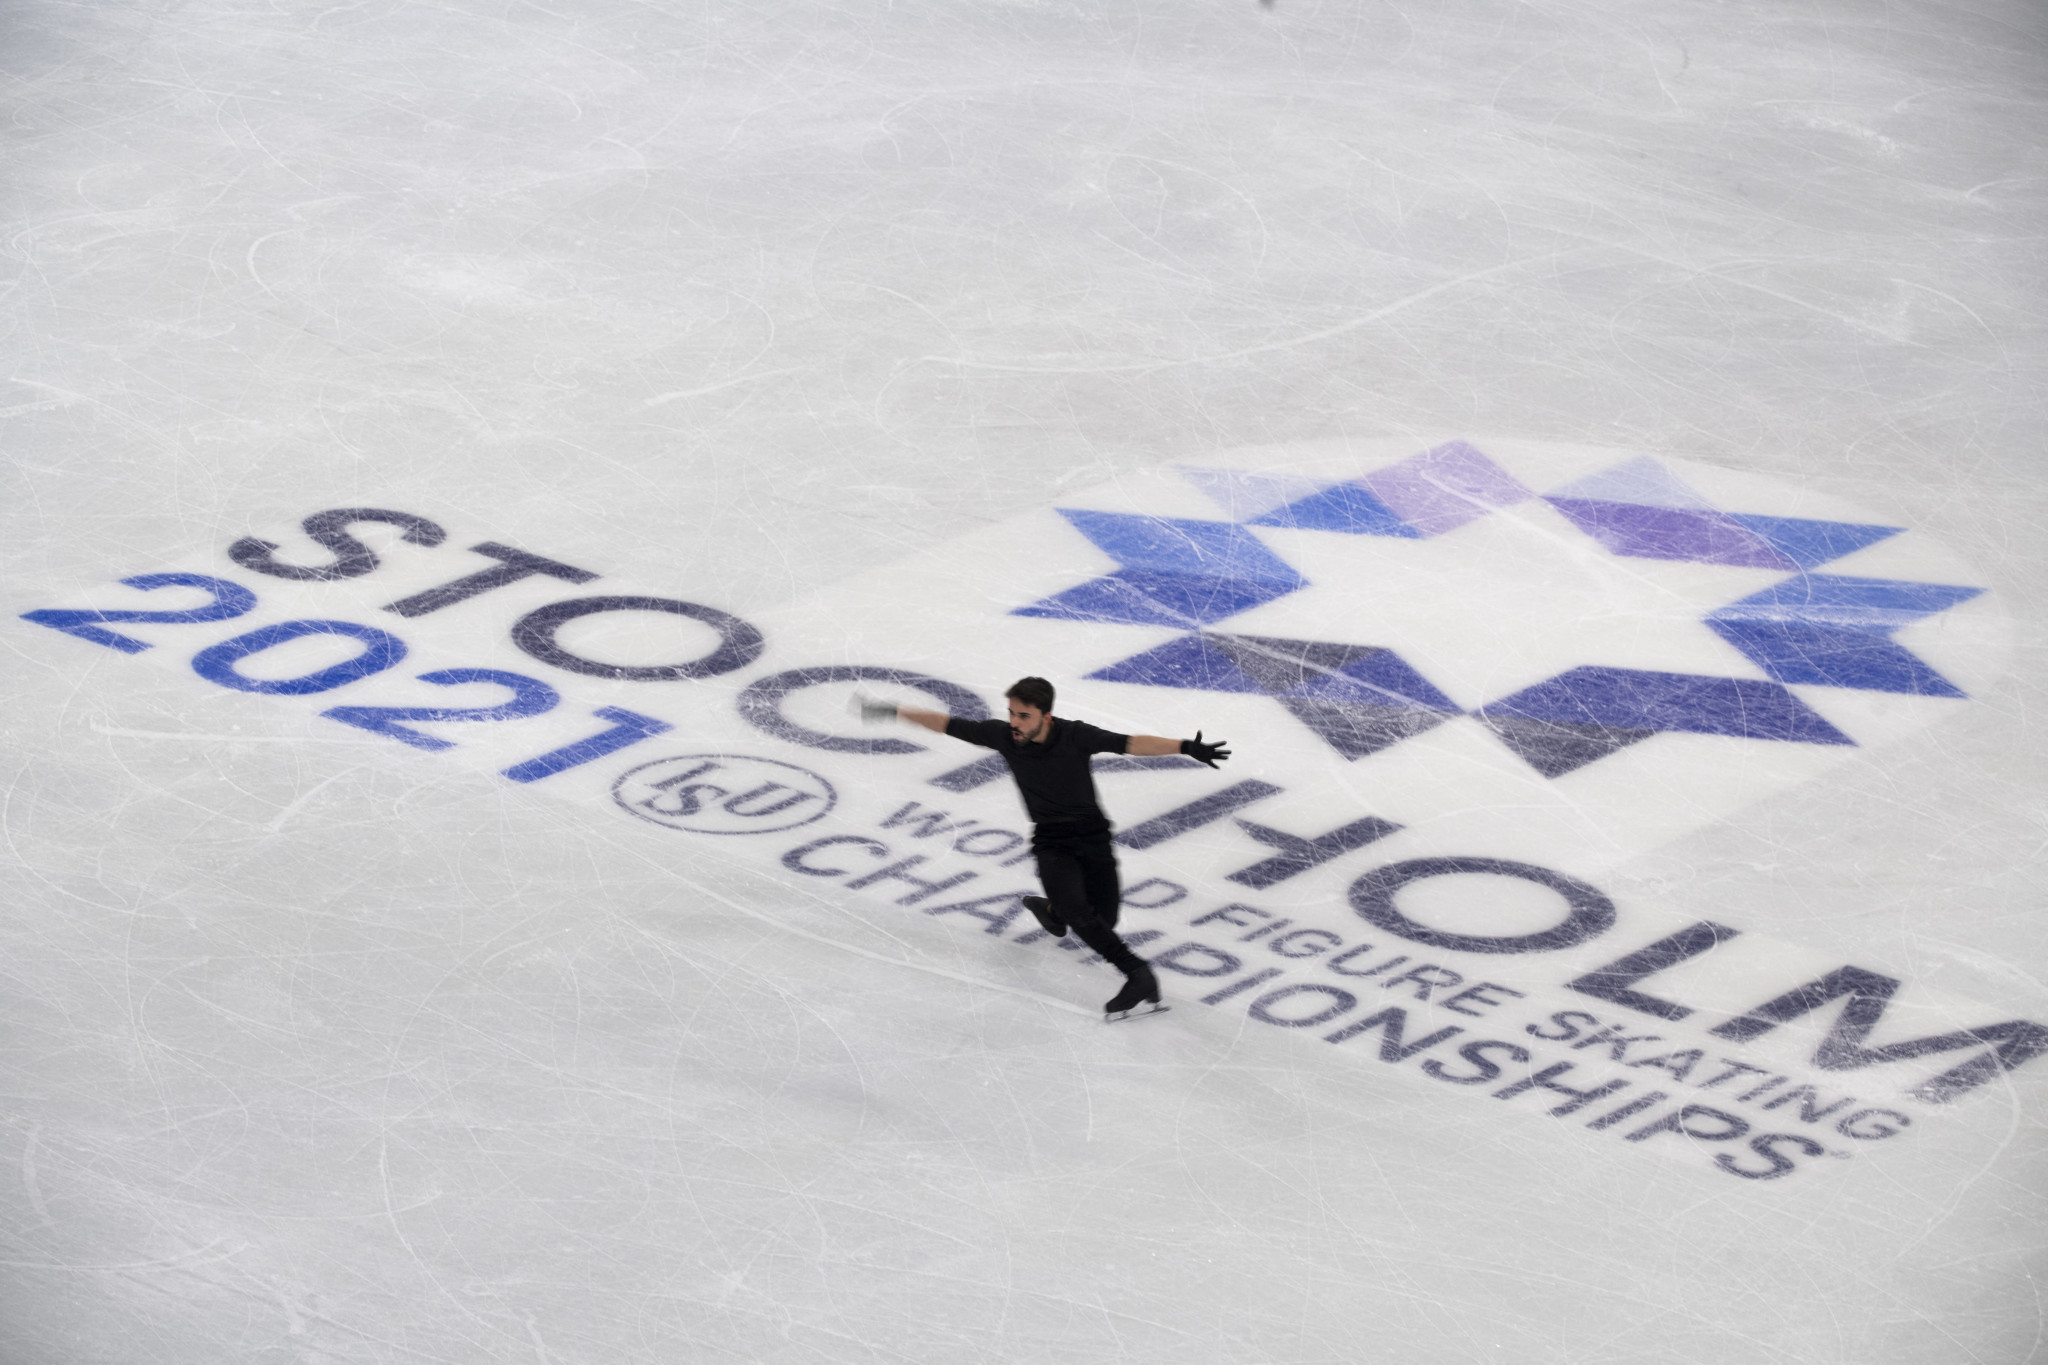 The ISU faced criticism over the strength of its COVID-19 protocols ahead of the World Figure Skating Championships ©Getty Images